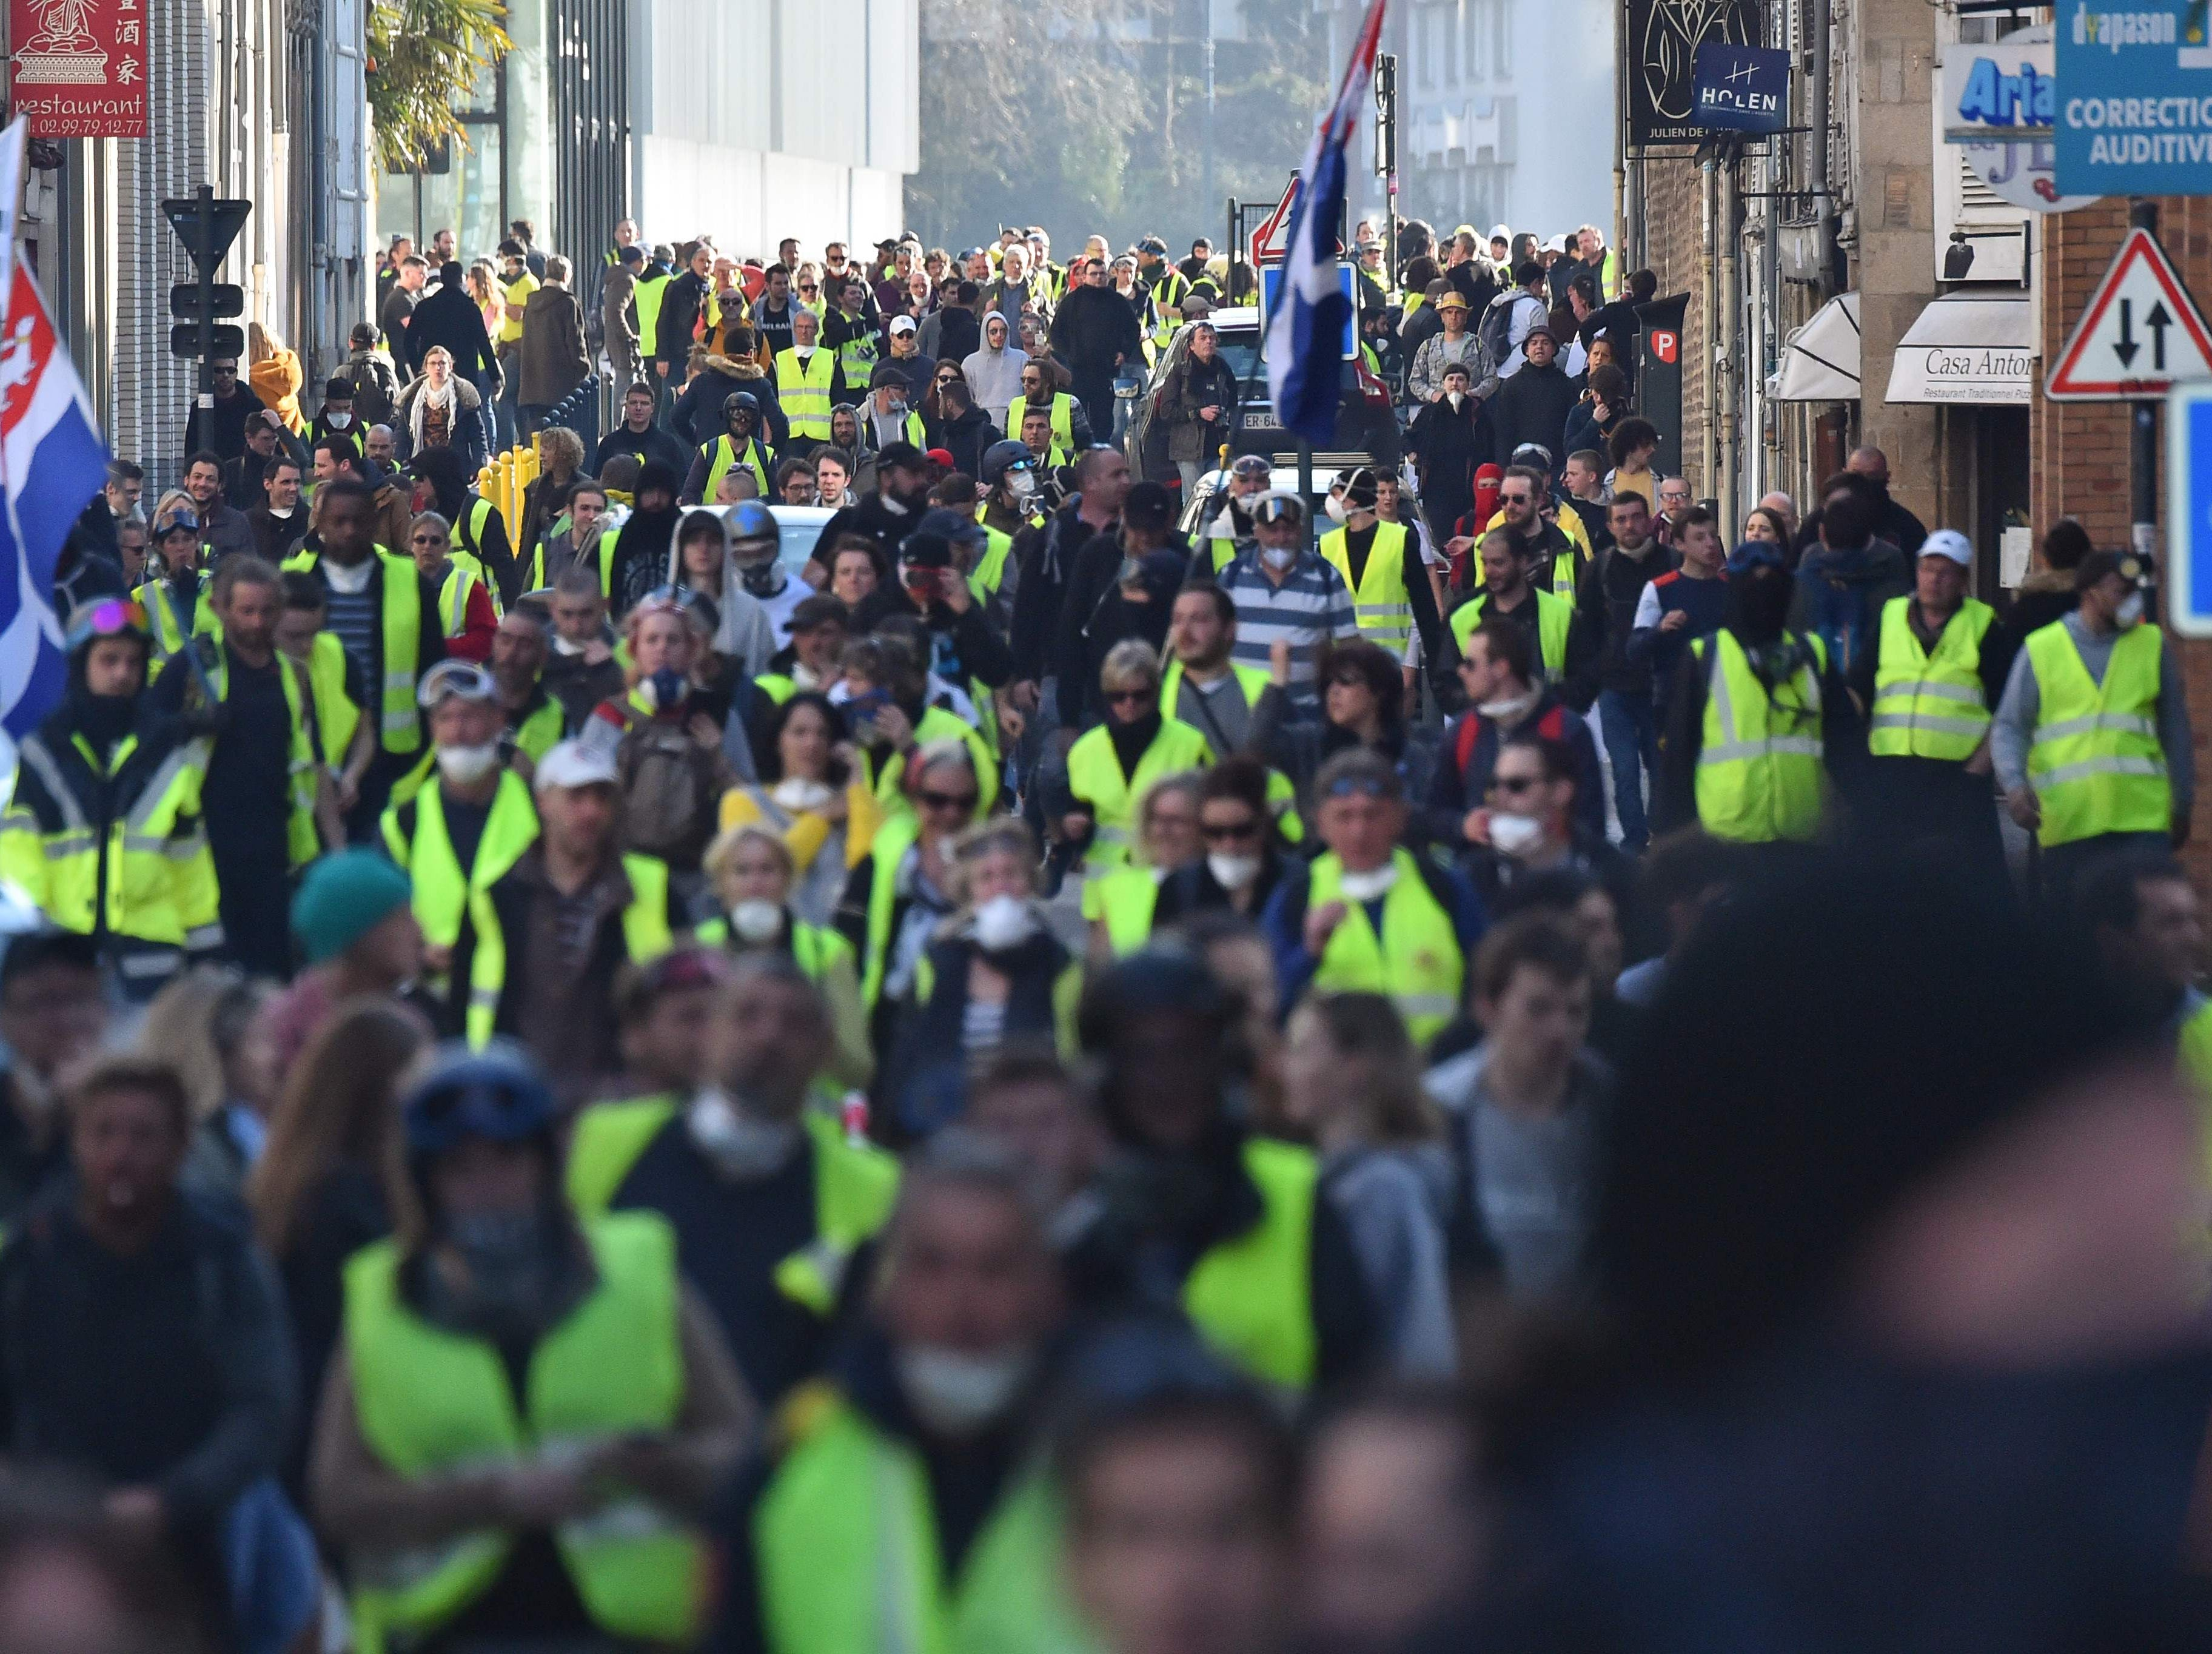 Members of the yellow vest (gilet jaune) take part in the 15th consecutive Saturday of demonstrations in Rennes, western France on Feb. 23, 2019.